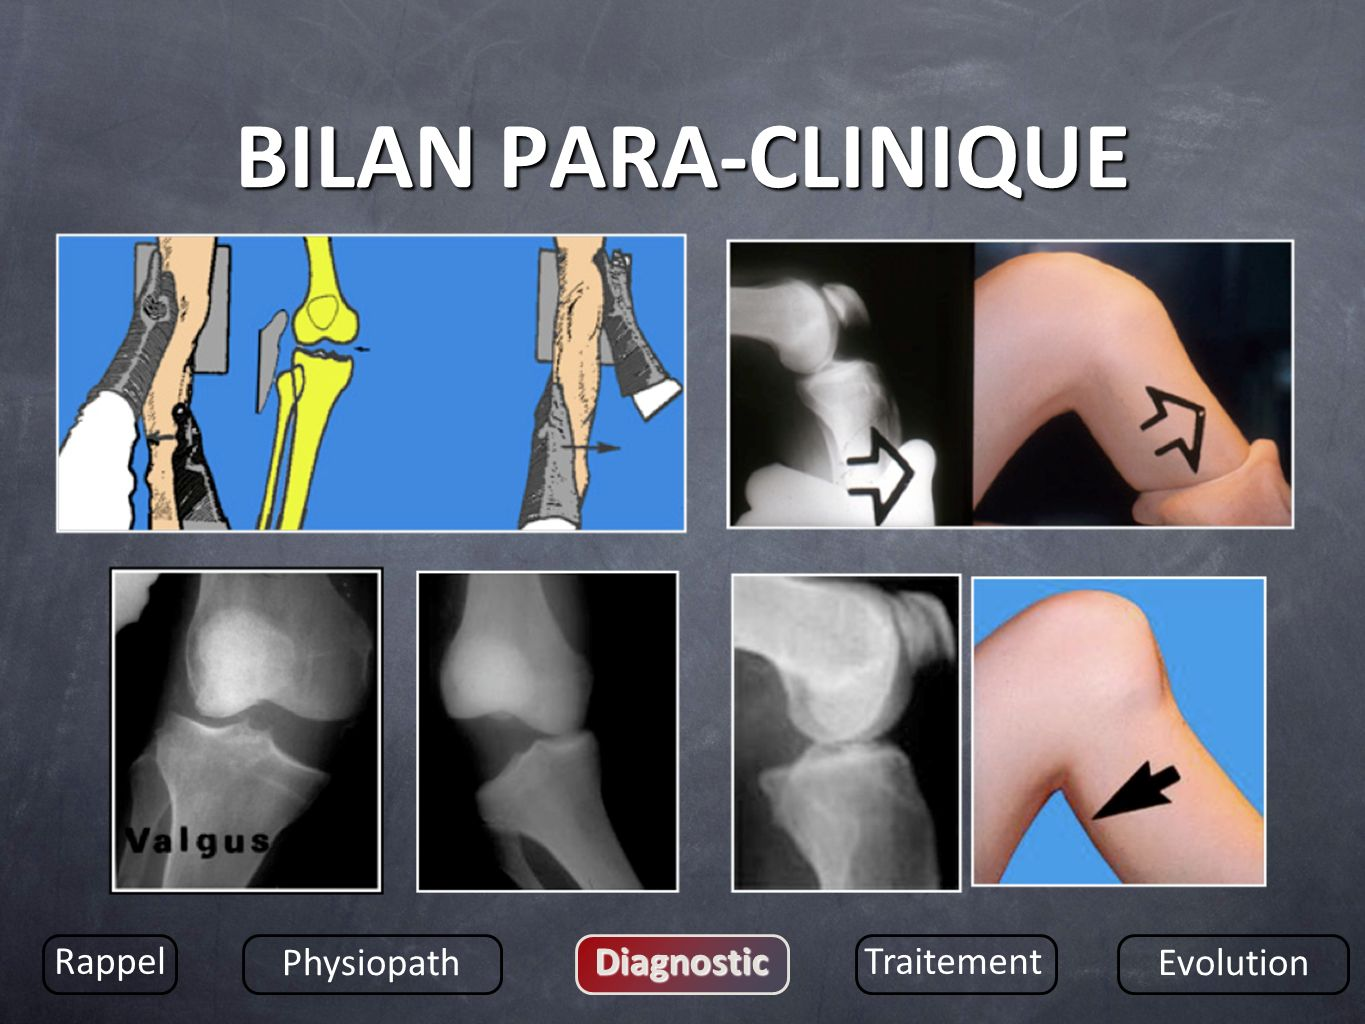 BILAN PARA-CLINIQUE Rappel Physiopath Diagnostic Traitement Evolution